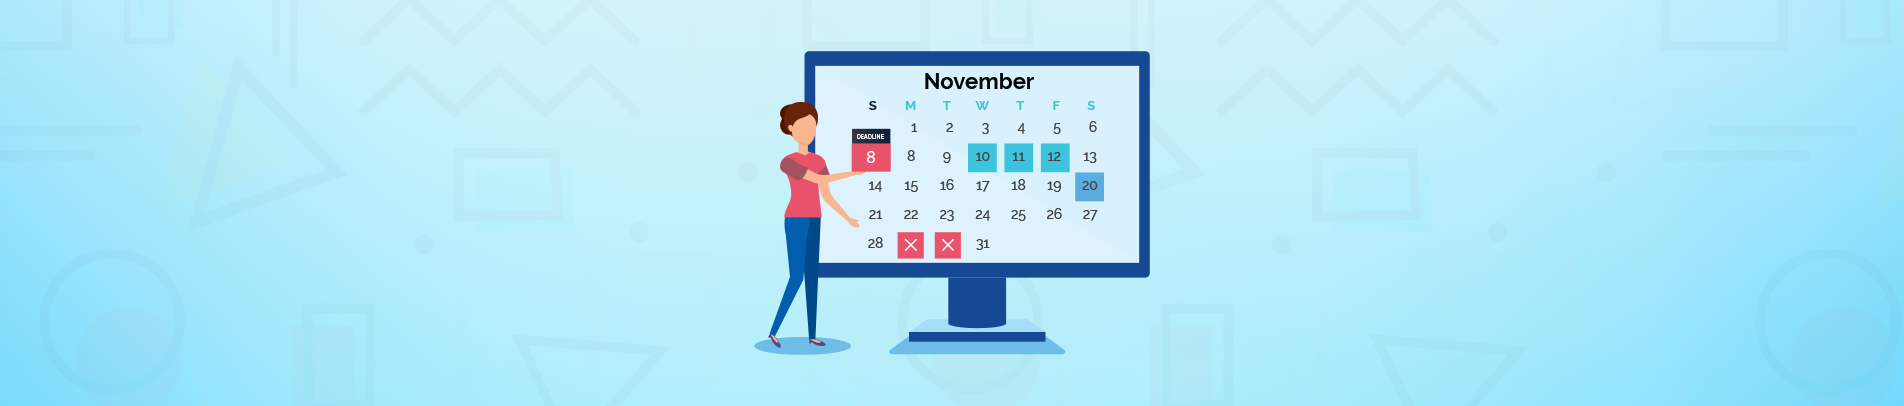 Tips to Effectively Manage Your Dynamics CRM Calendar